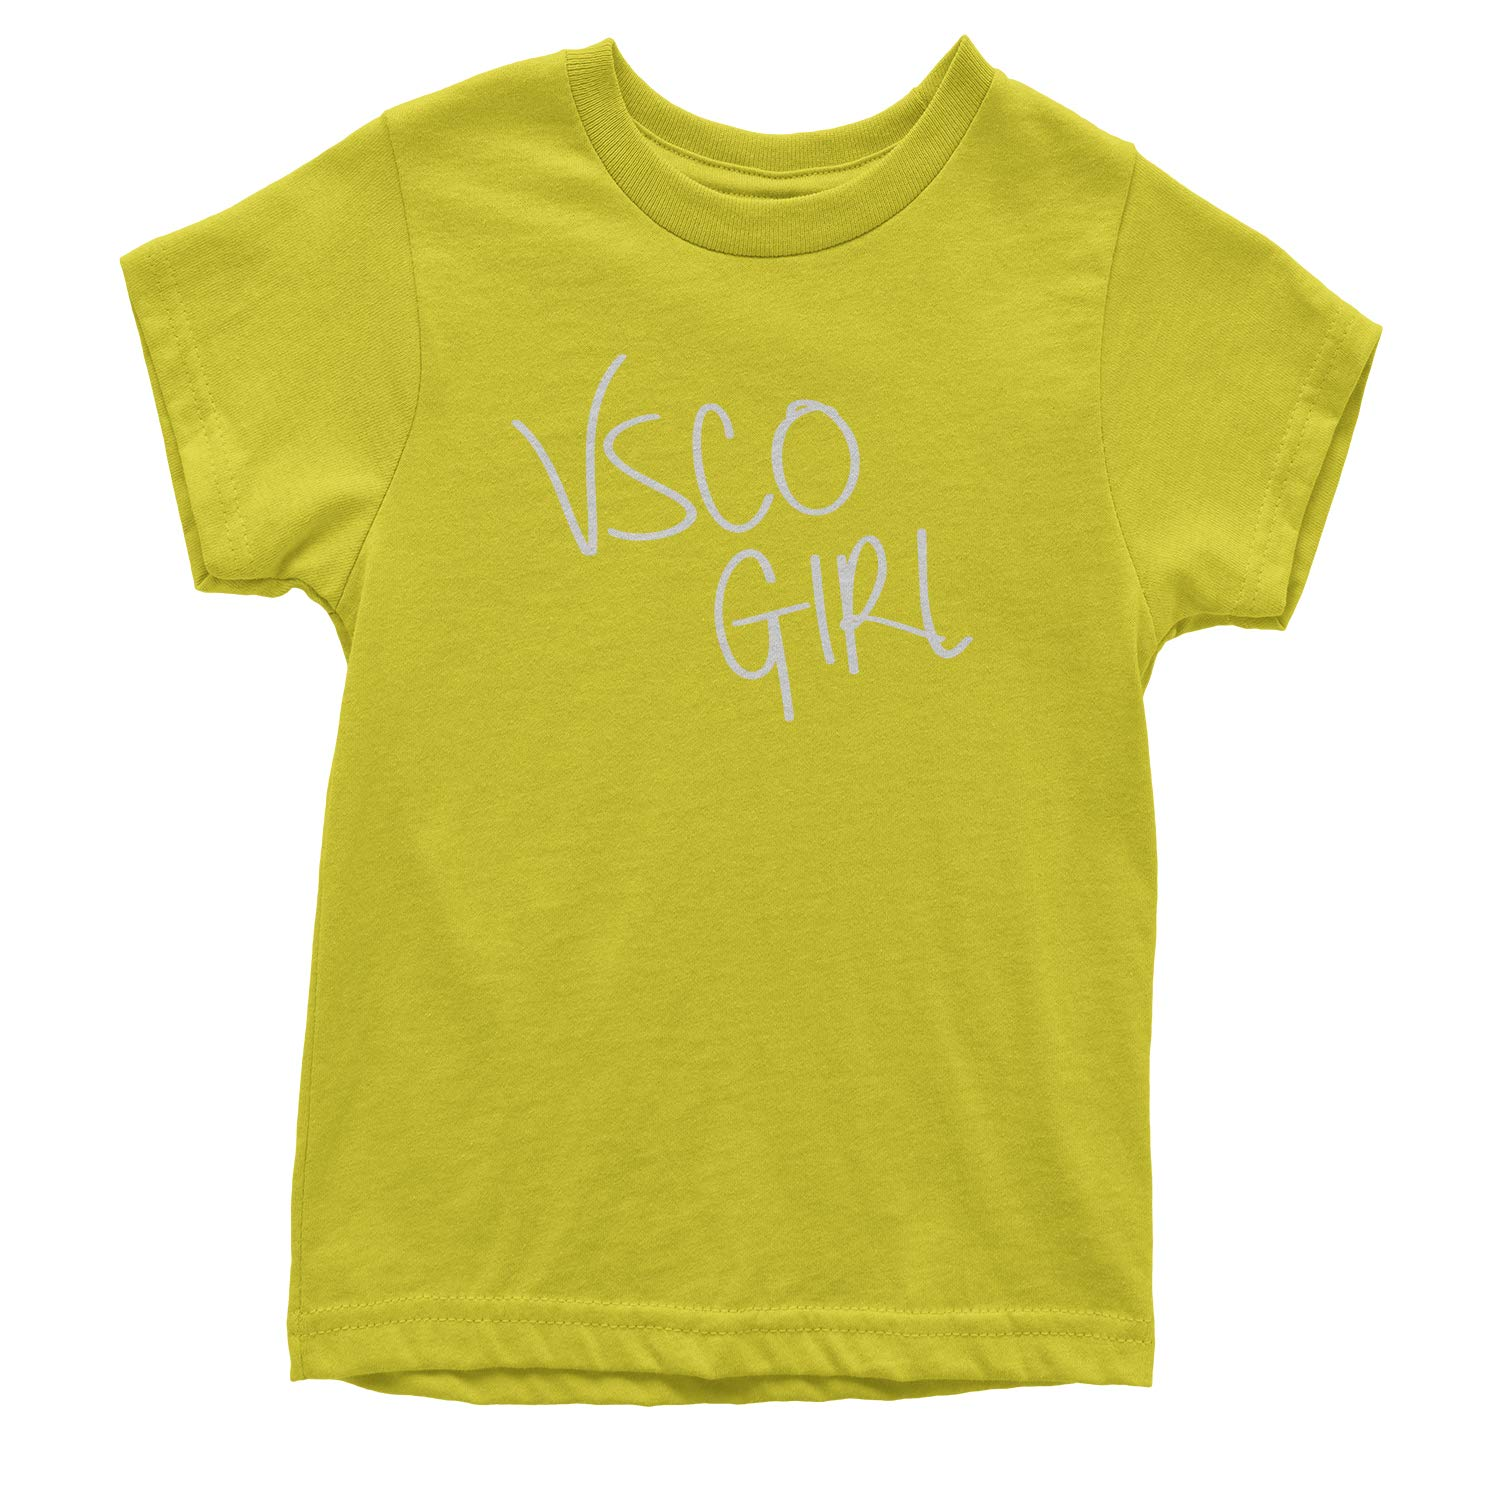 Expression Tees Vsco Girl Youth T-Shirt